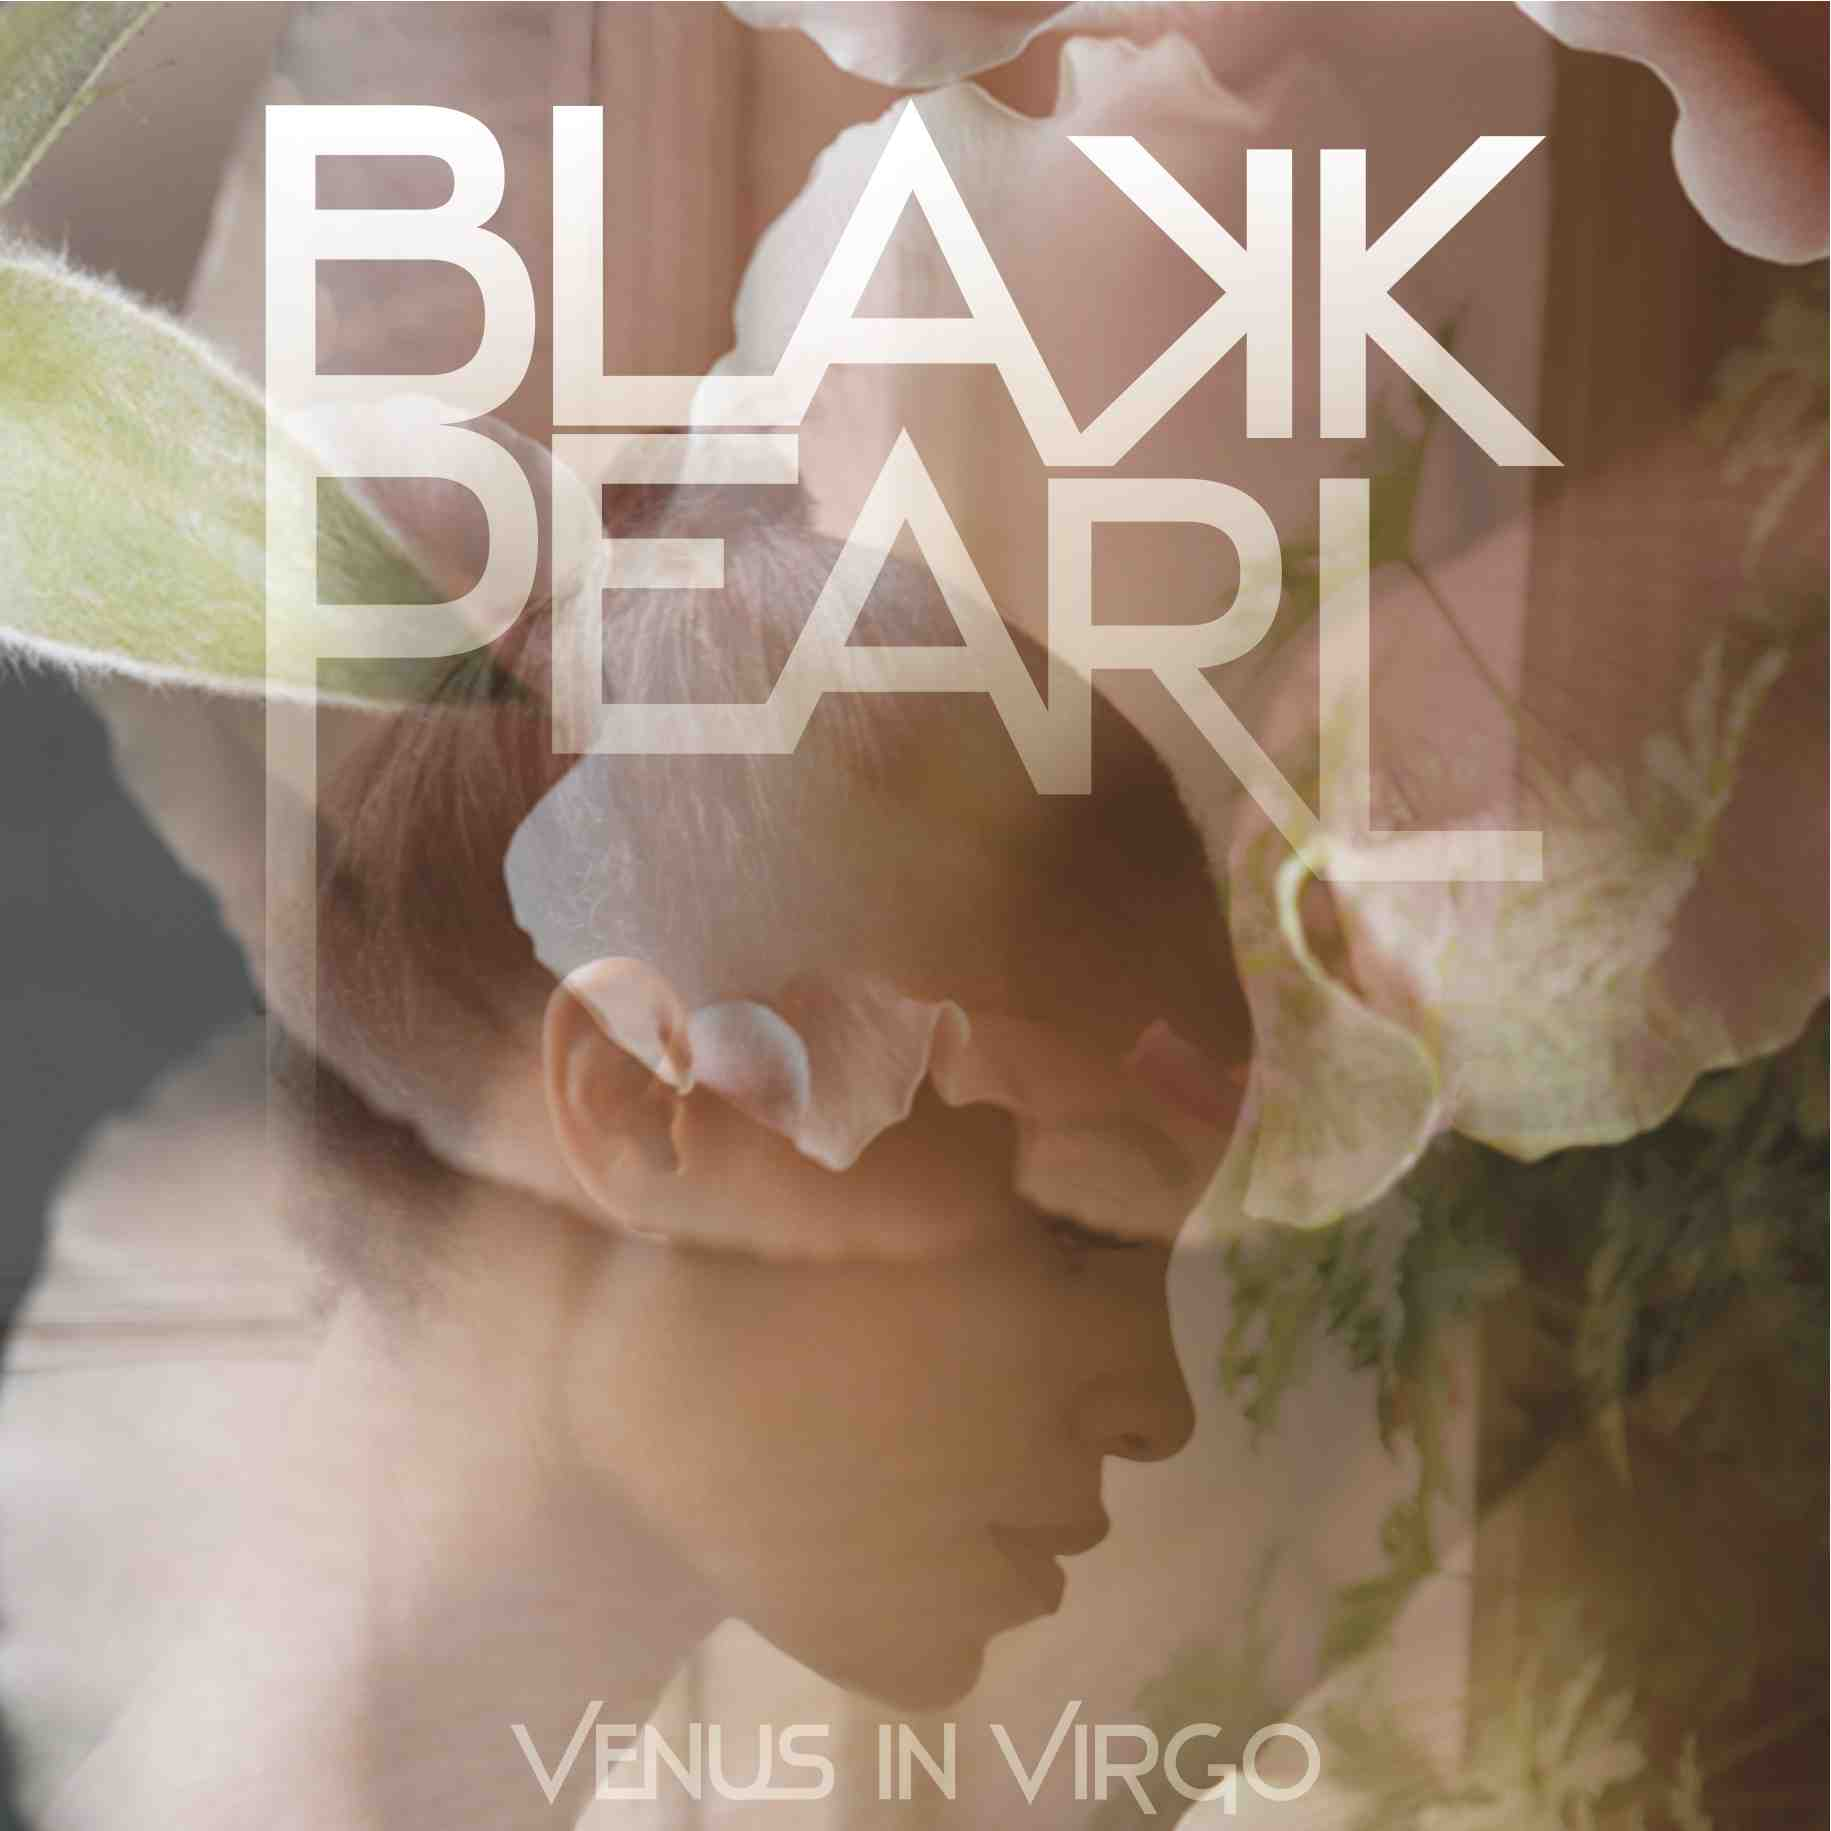 BLACK PEARL venus in virgo A 23.03.16